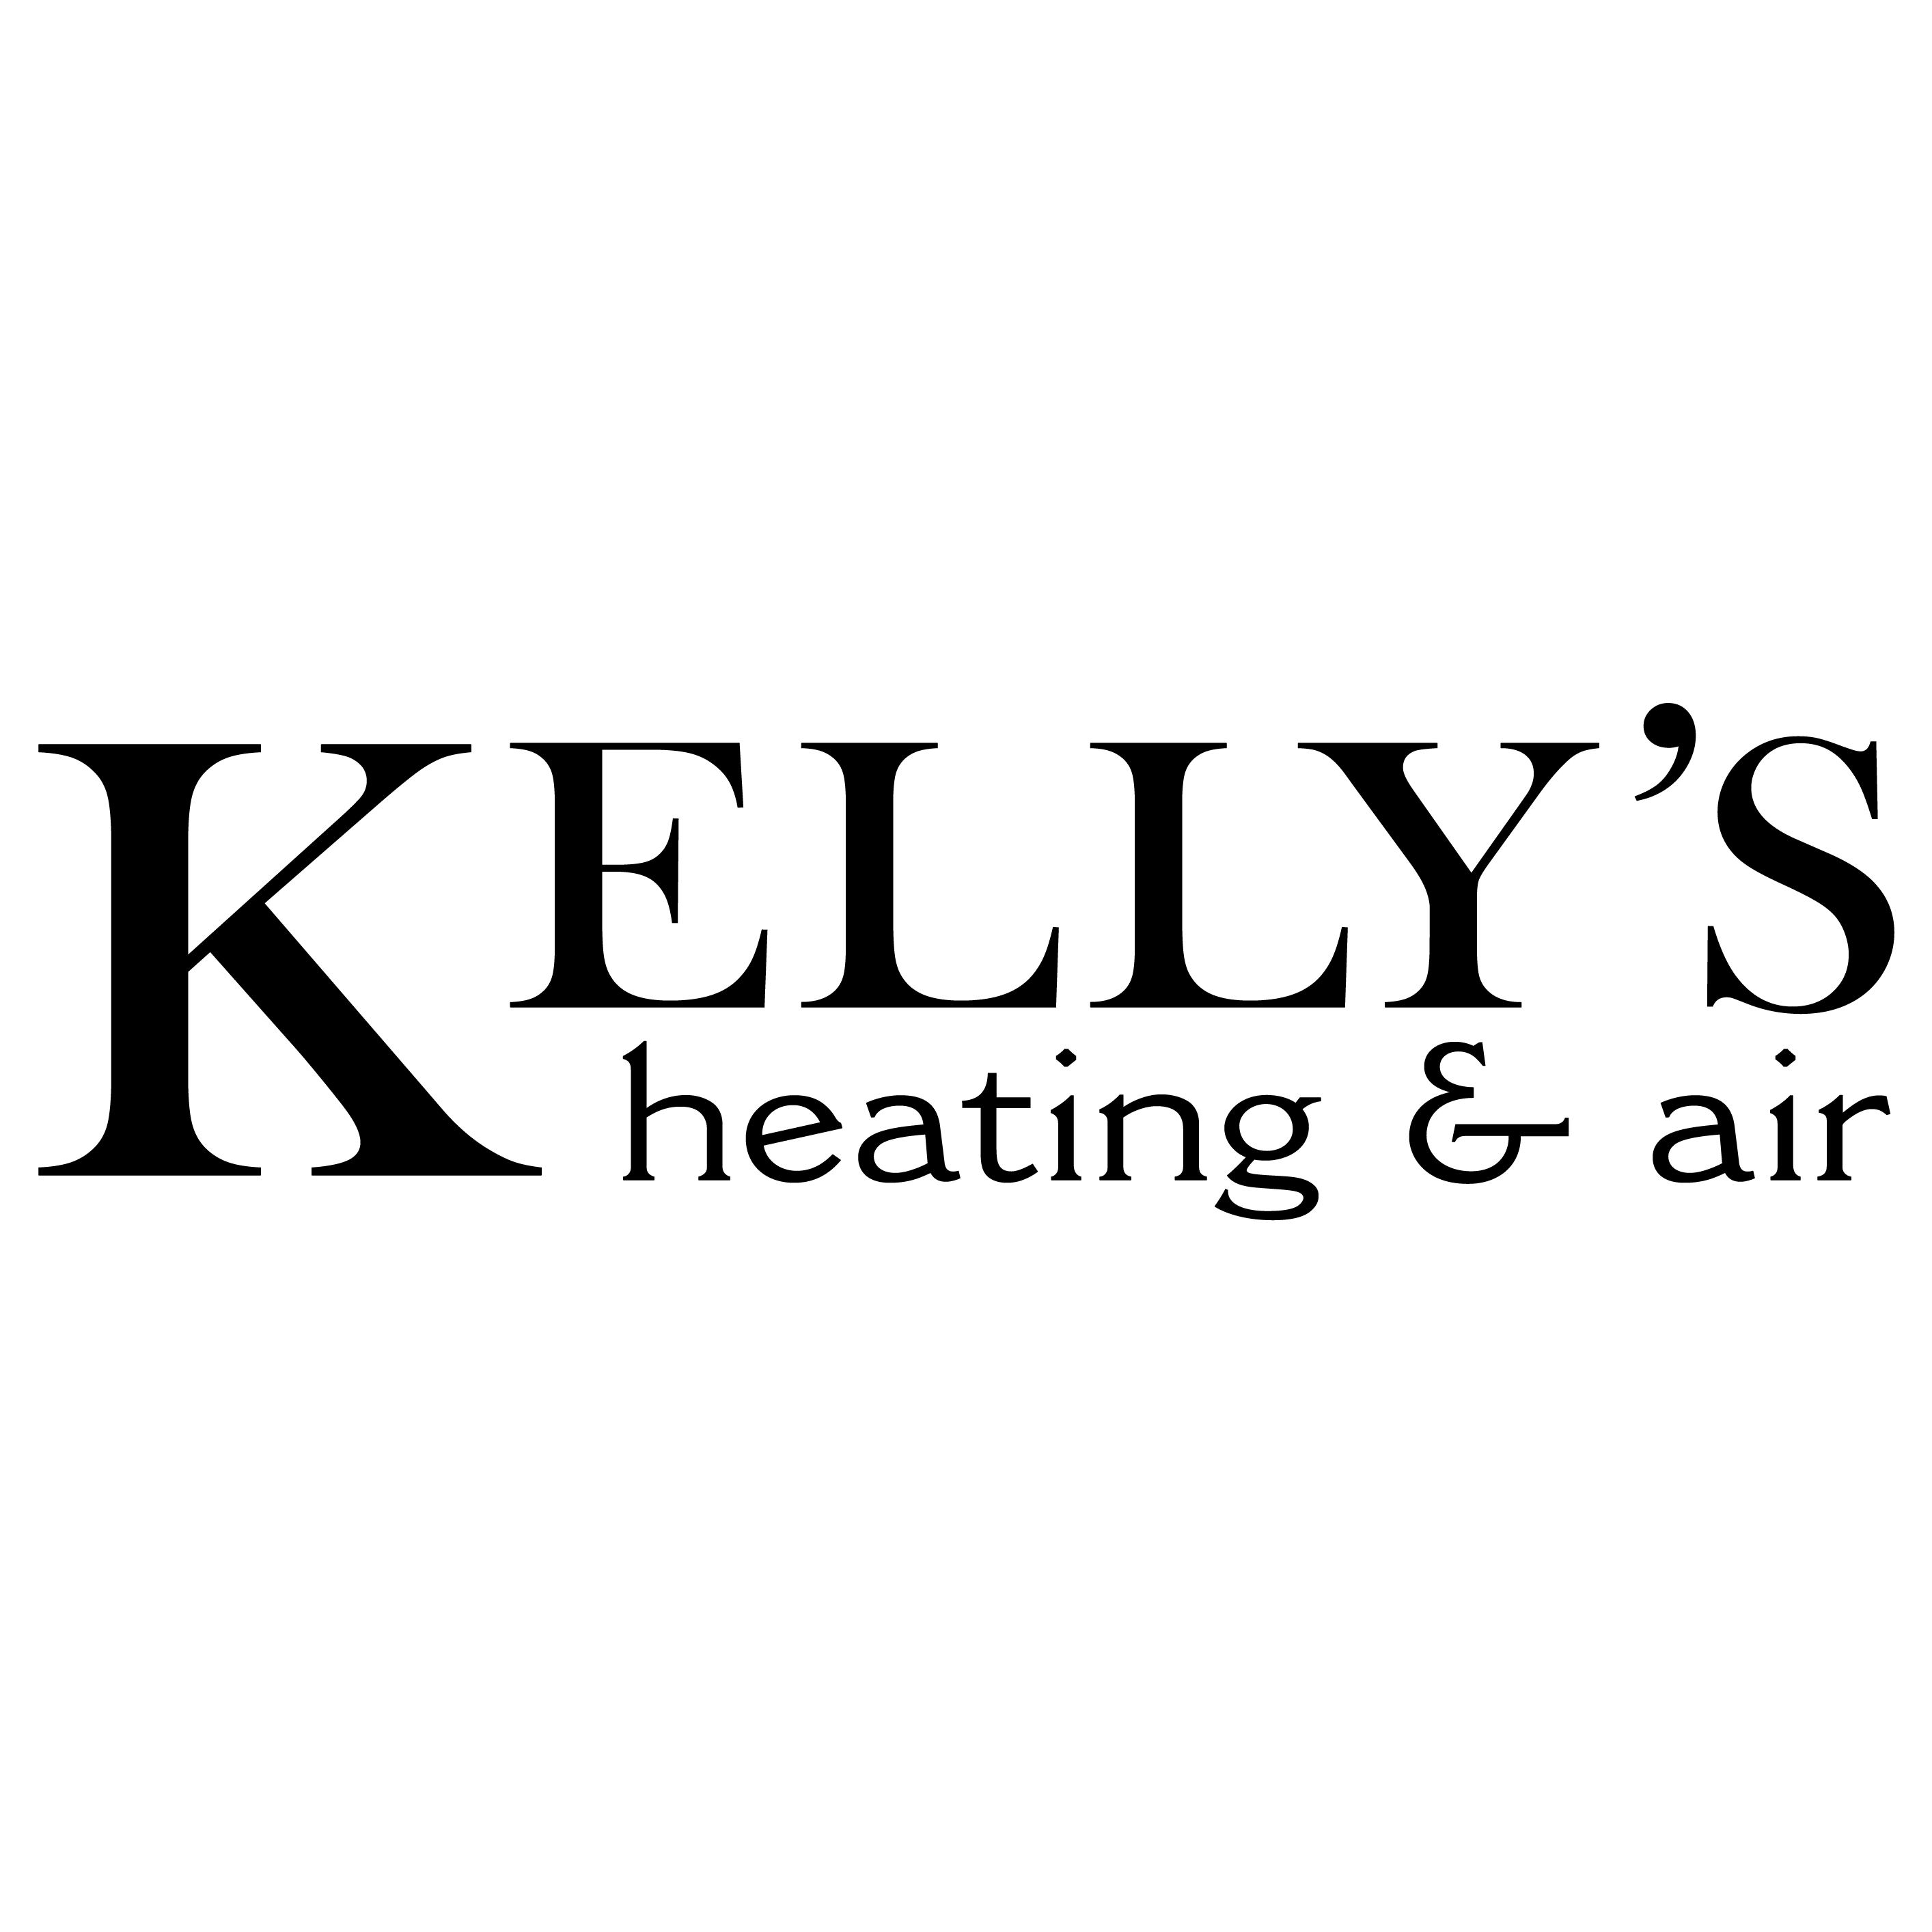 Kelly's Heating & Air